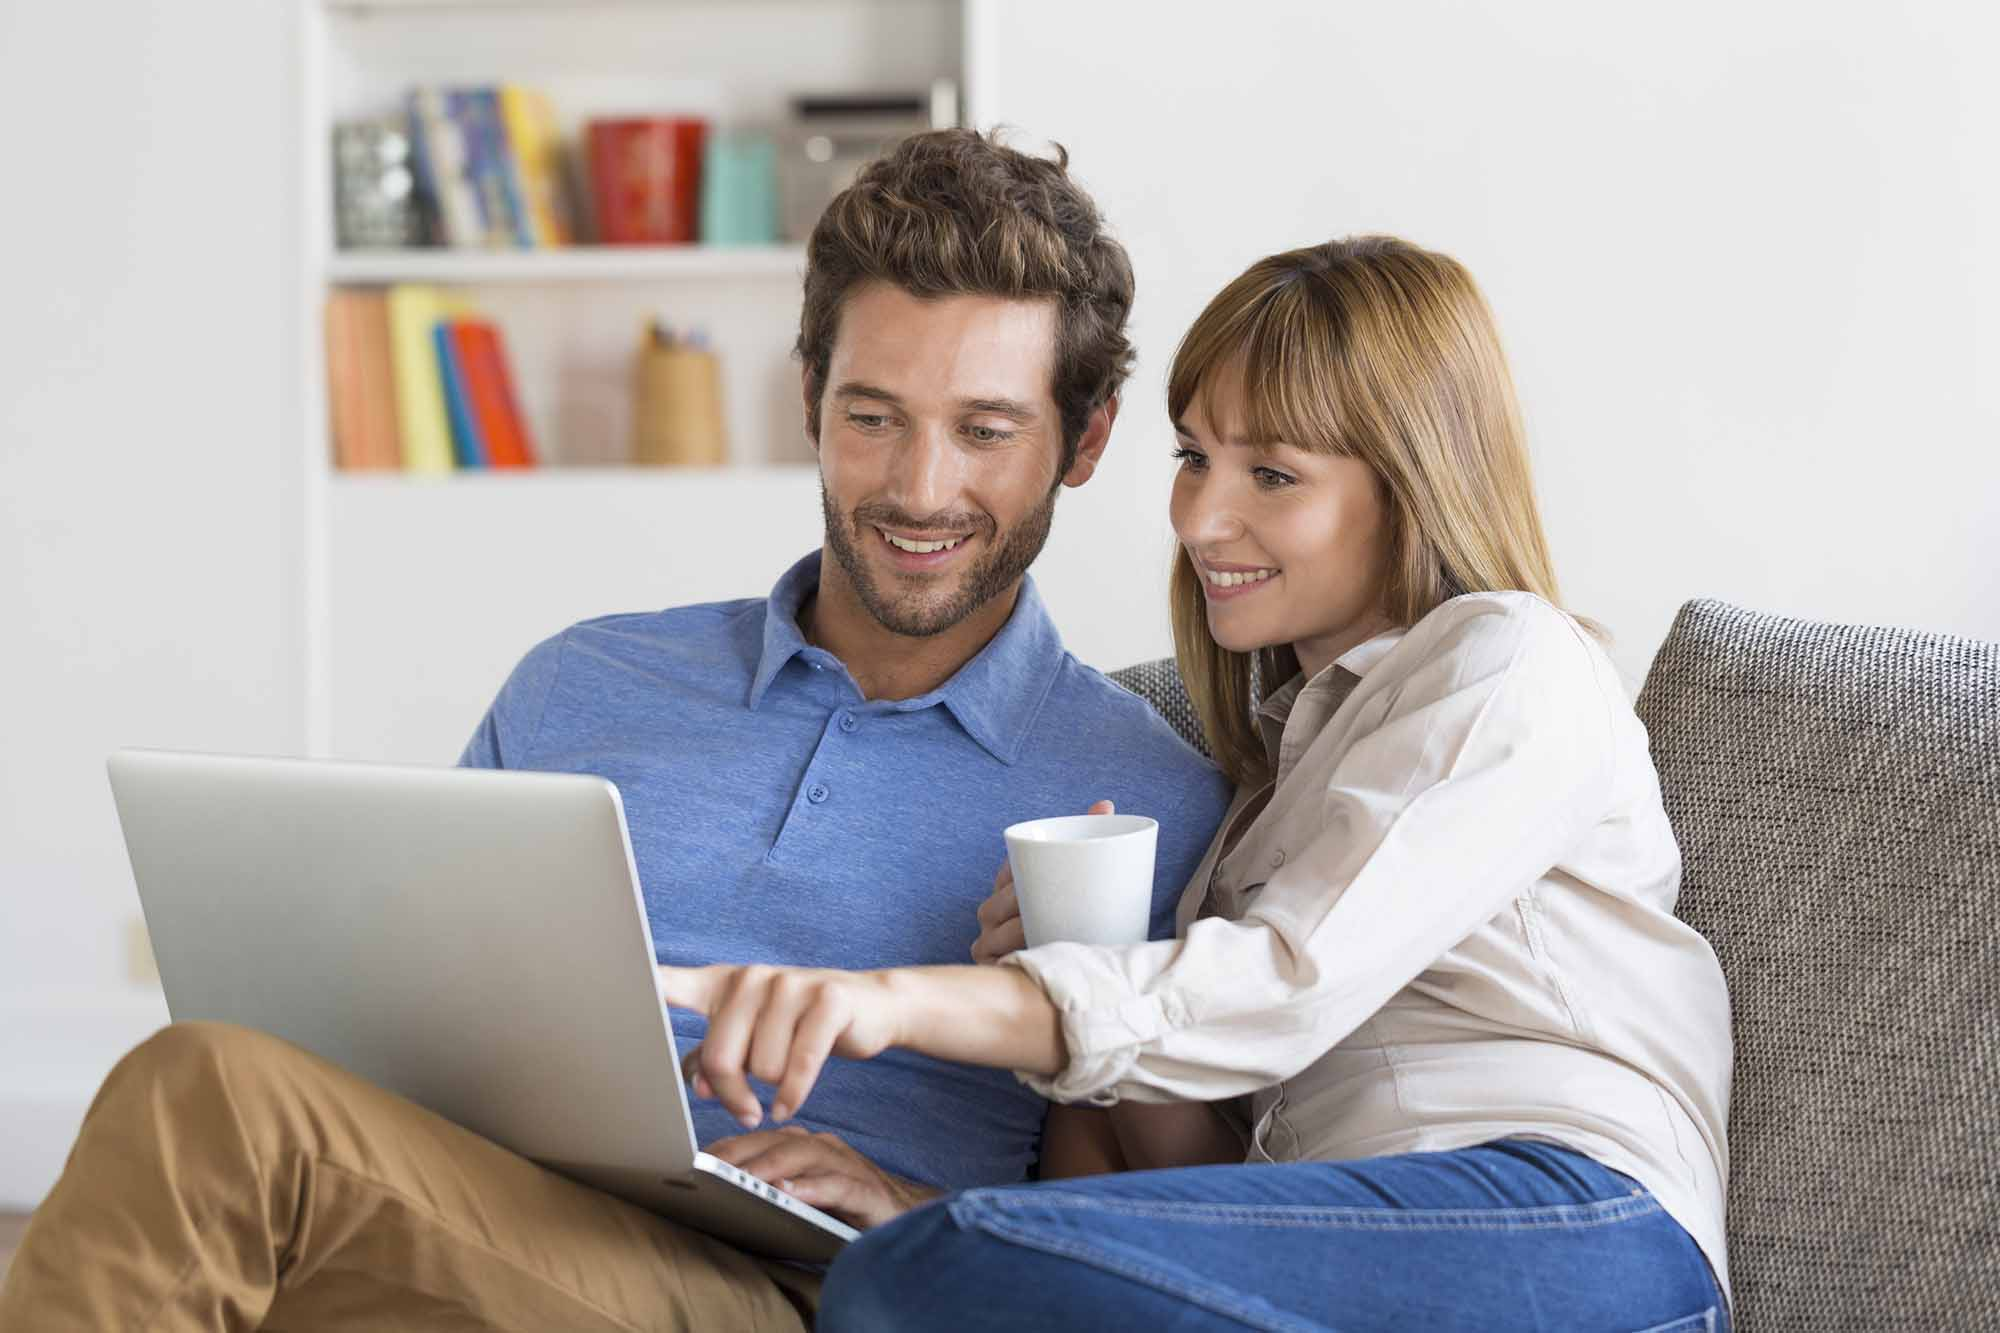 Mid adult man and woman online computer Modern white apartment in background